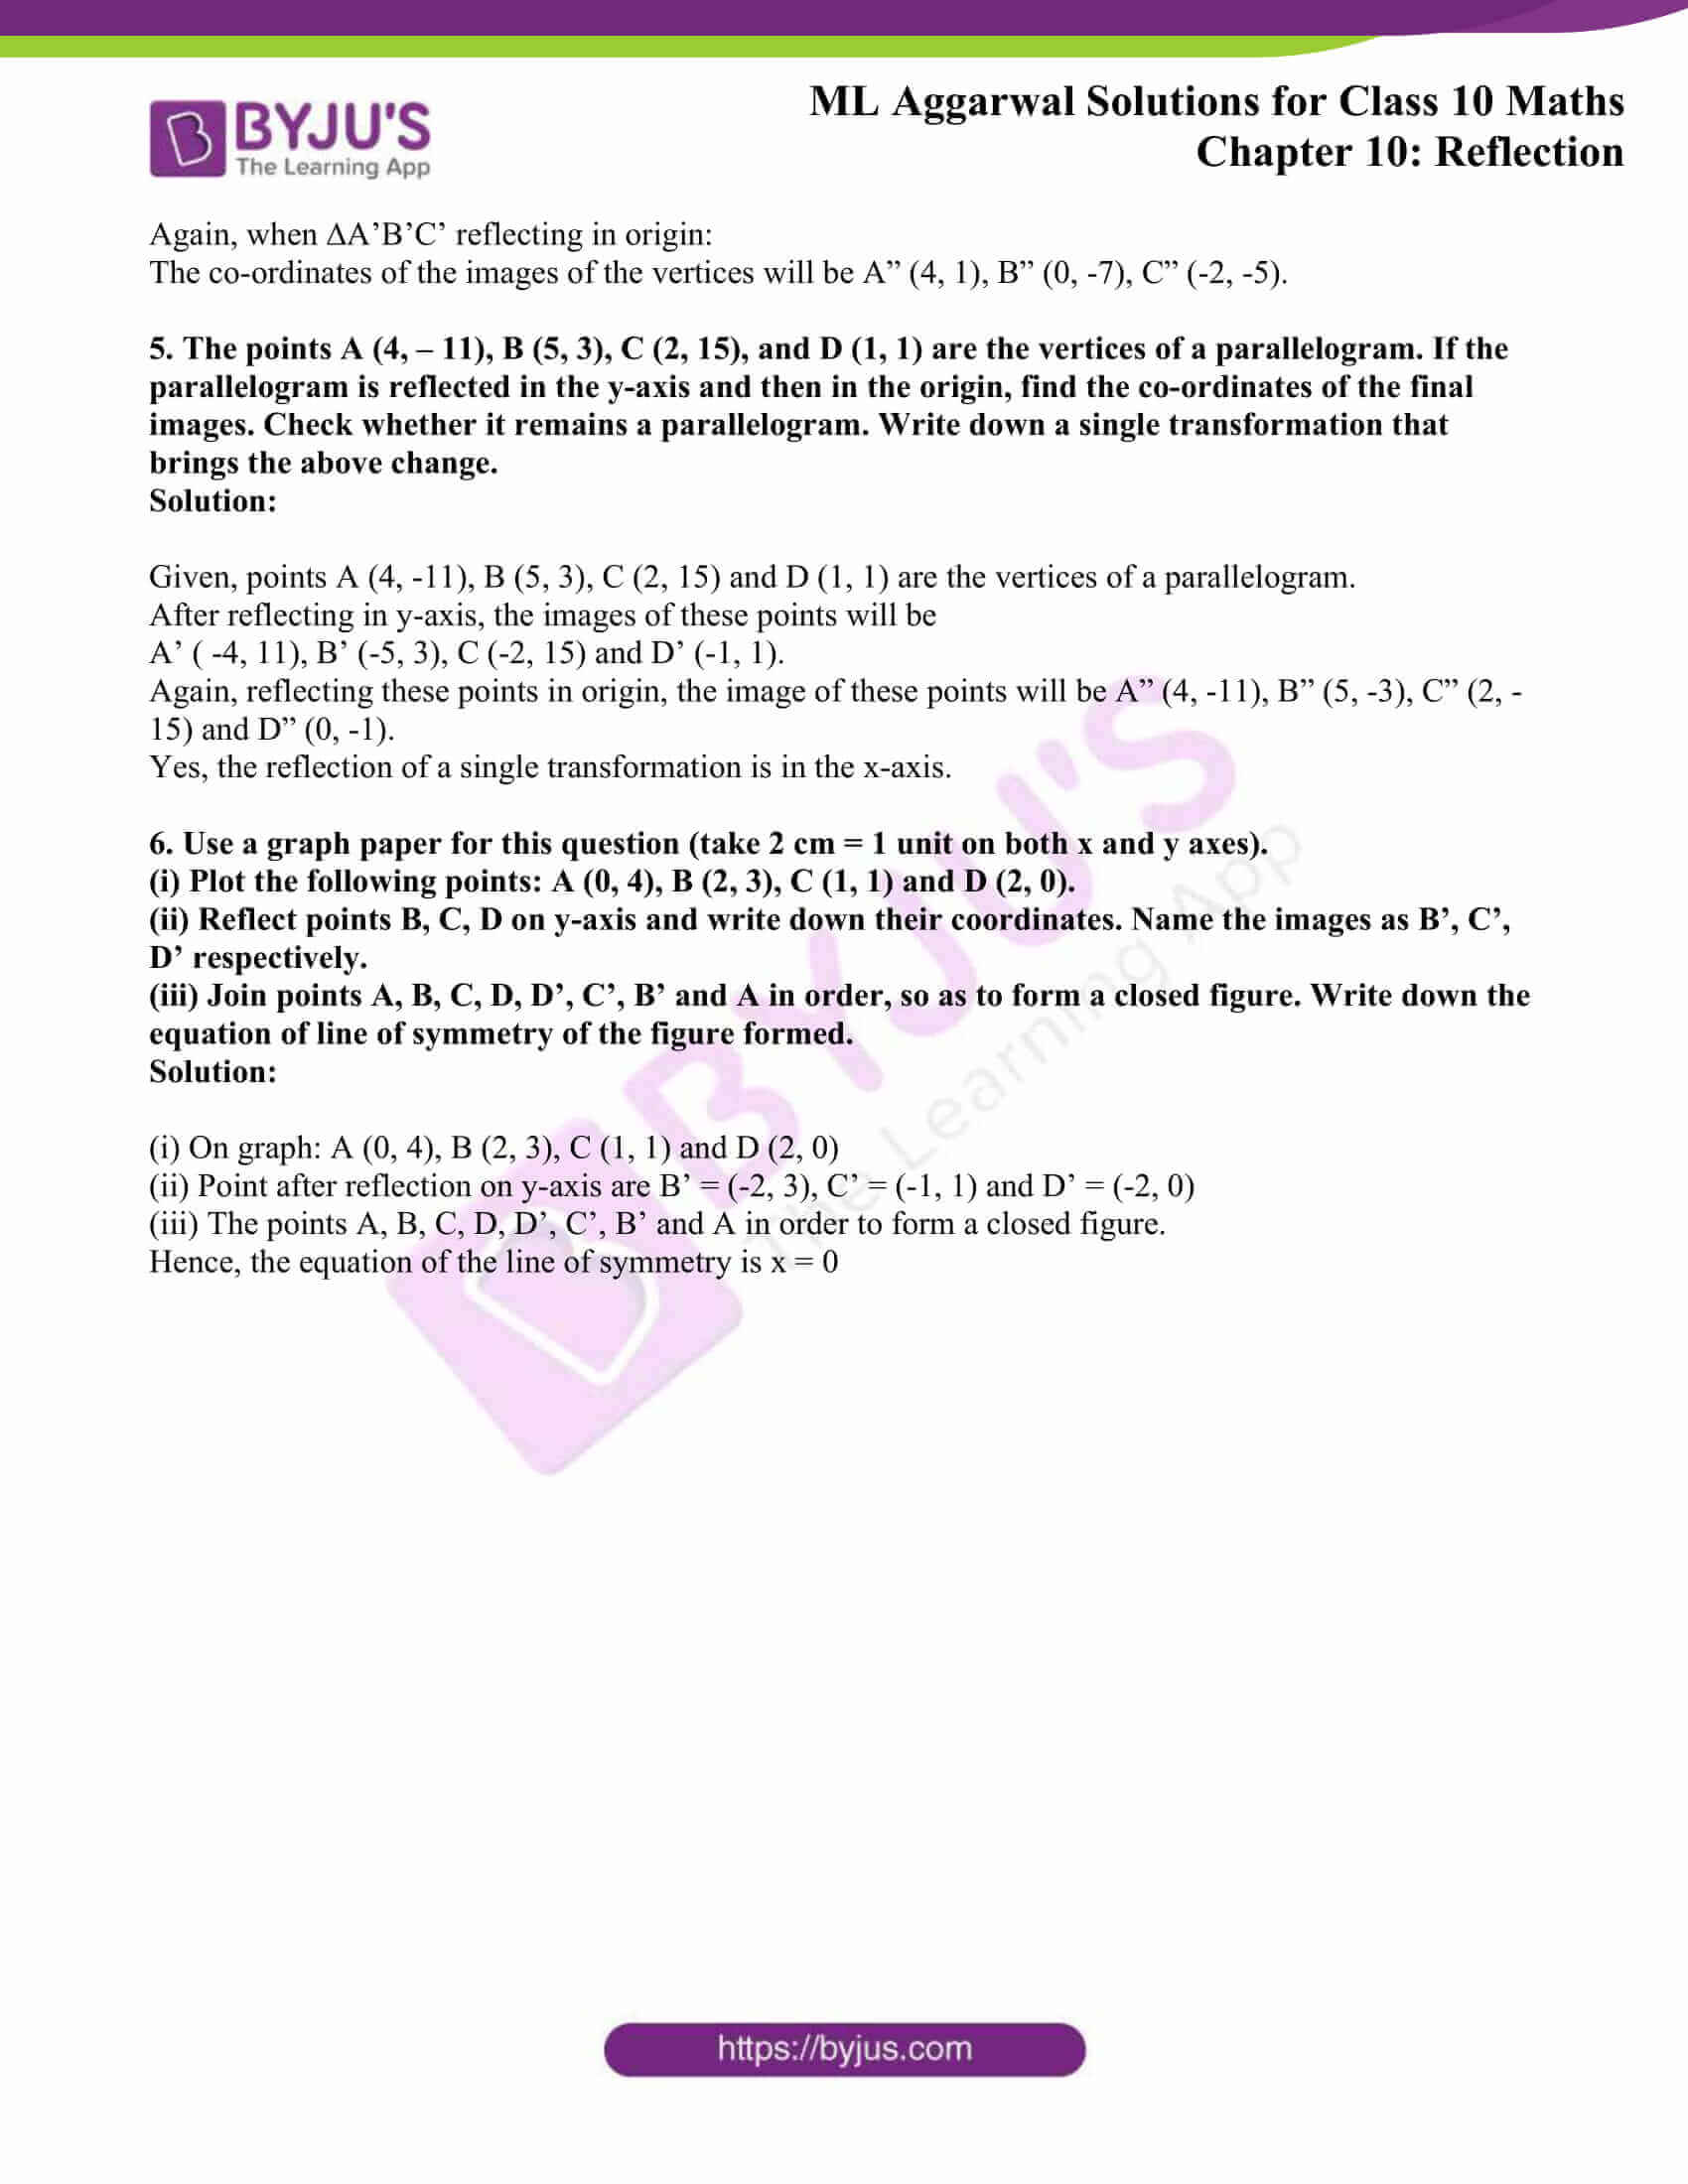 ml aggarwal solutions class 10 maths chapter 10 24